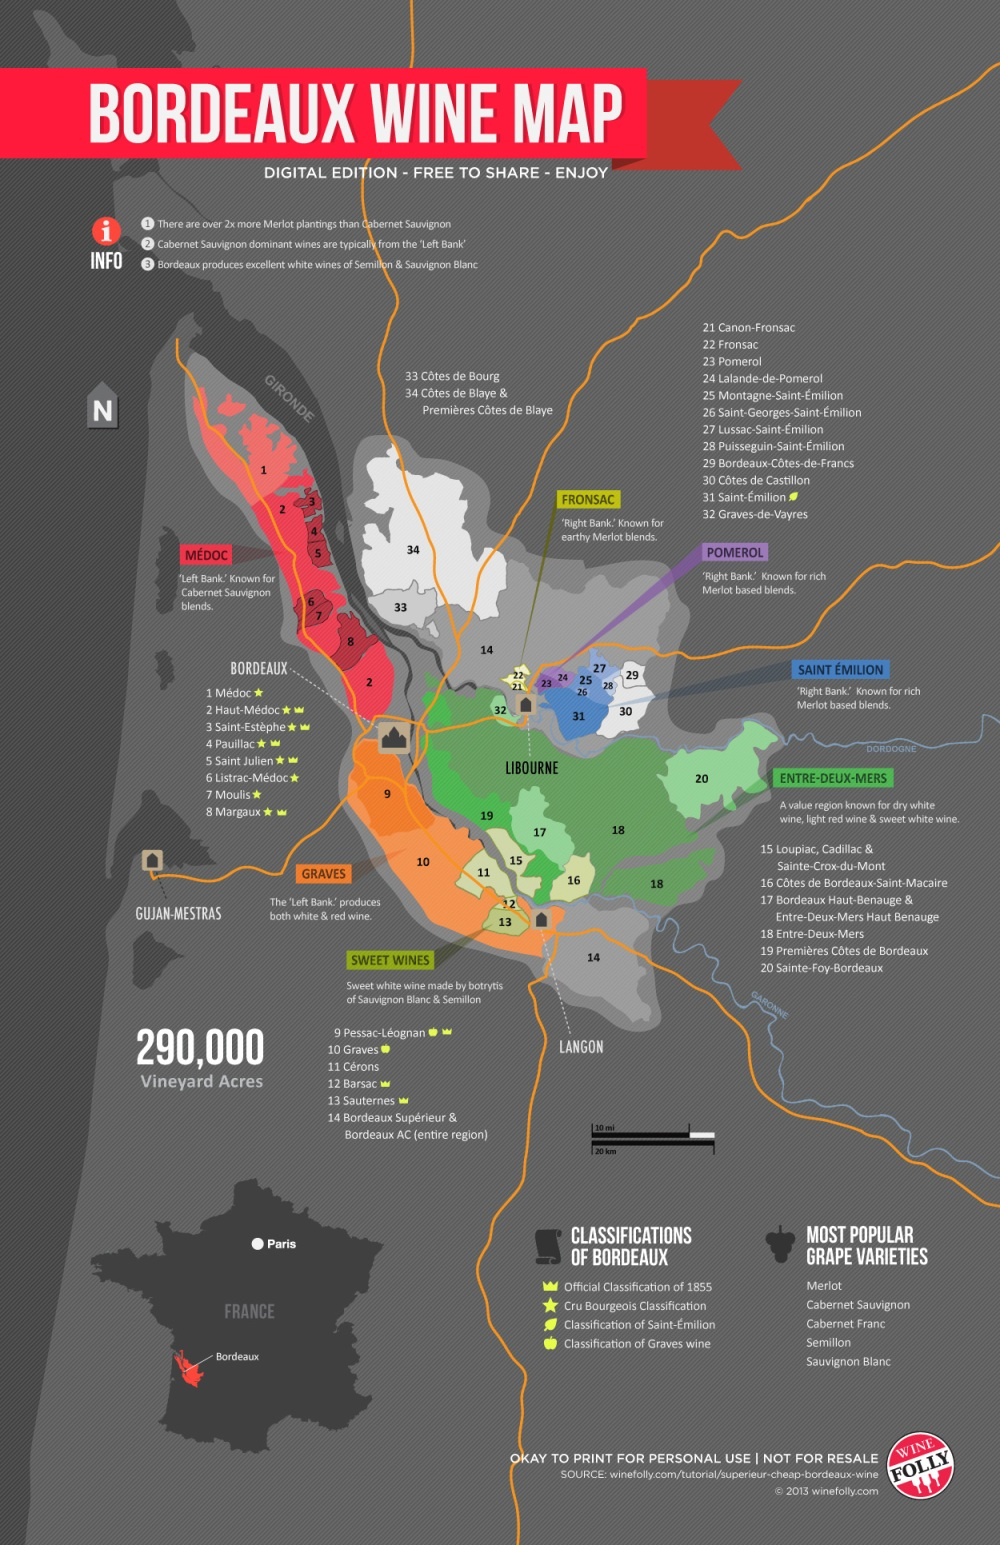 bordeaux-wine-map-by-wine-folly